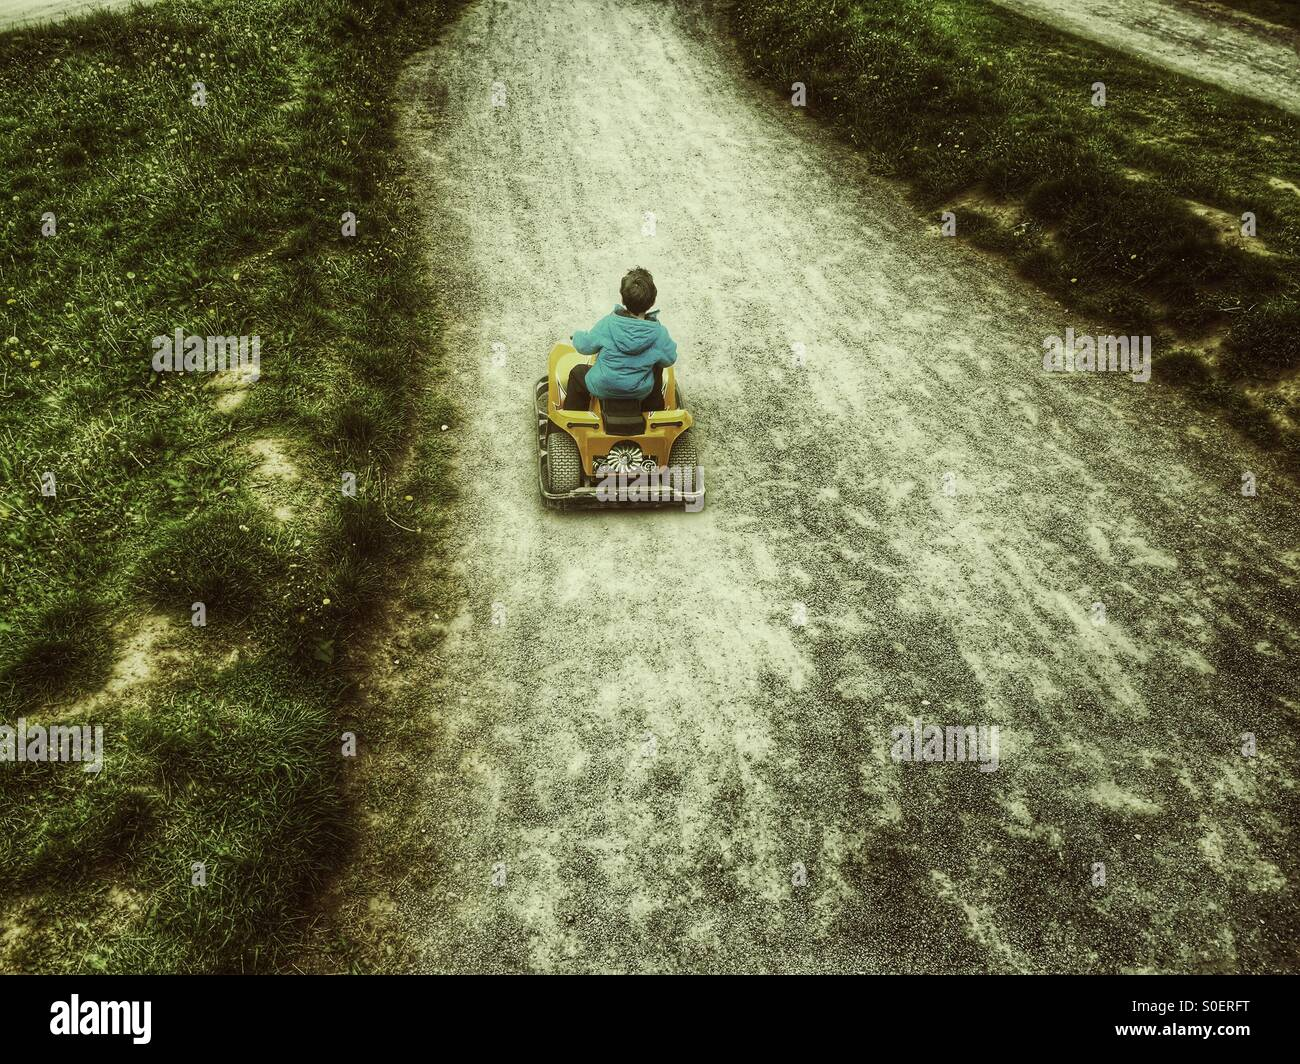 Little boy karting - Stock Image